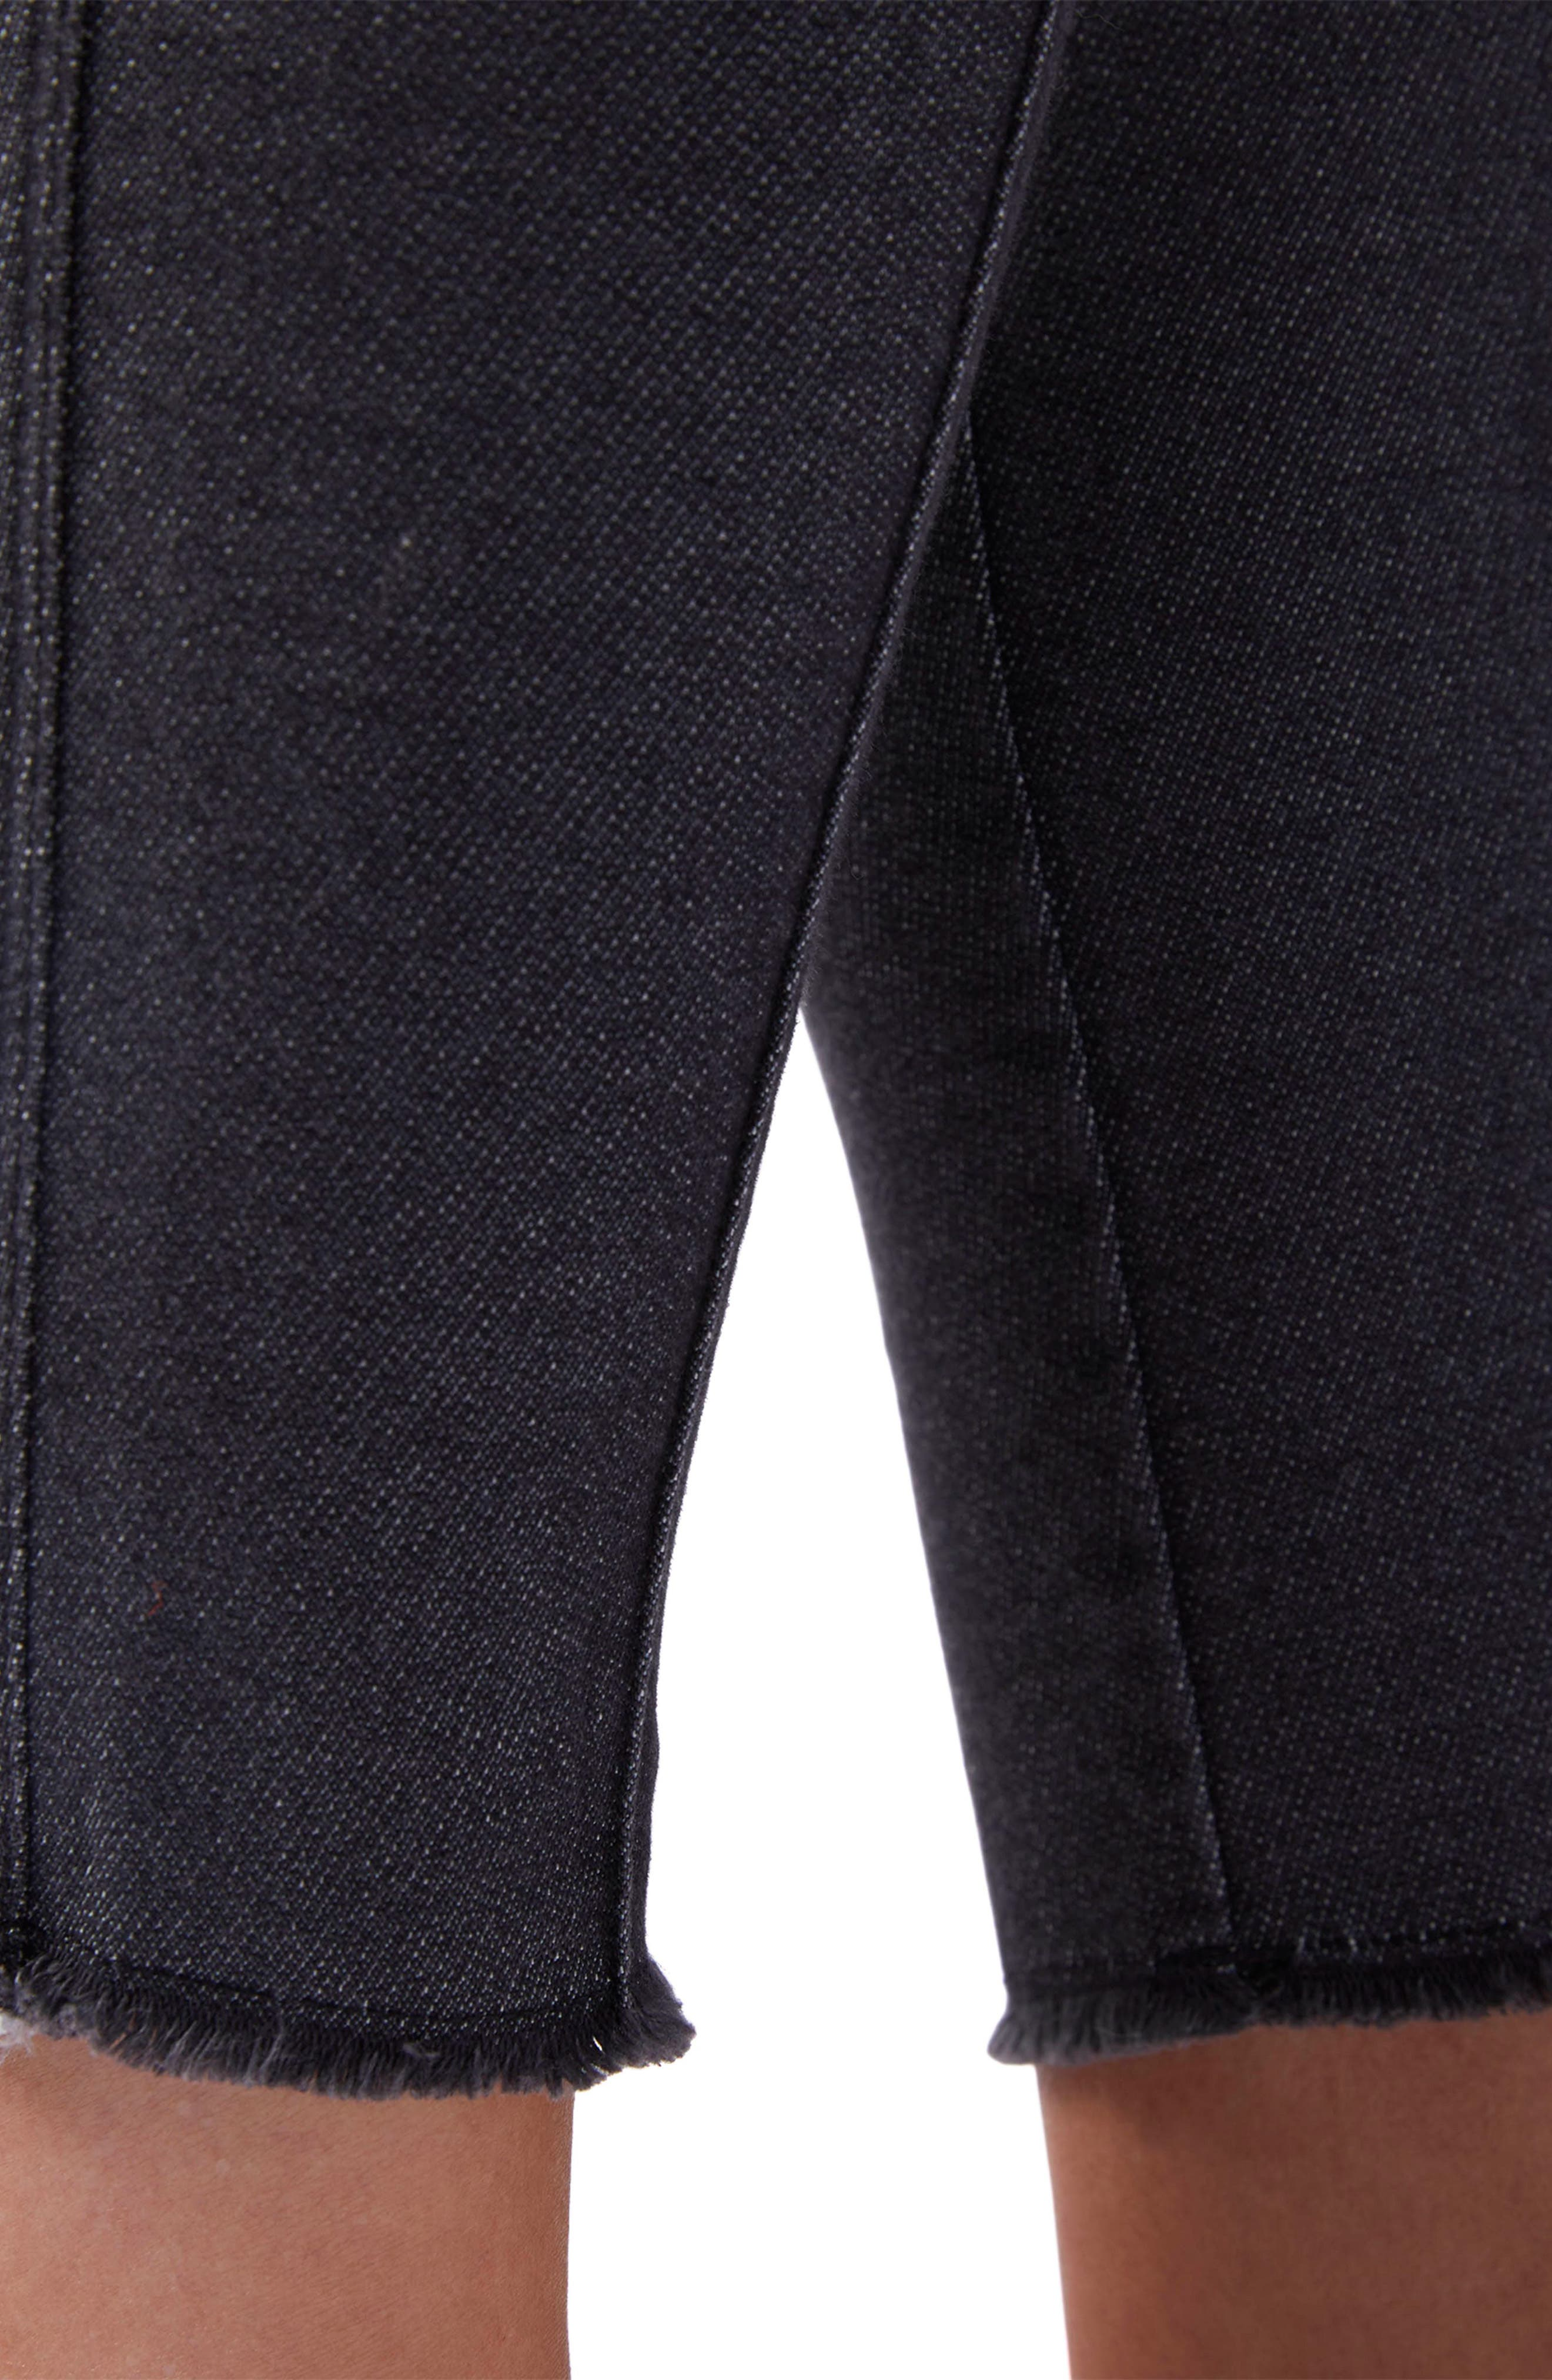 Graphic Pack Jeggings,                             Alternate thumbnail 4, color,                             005